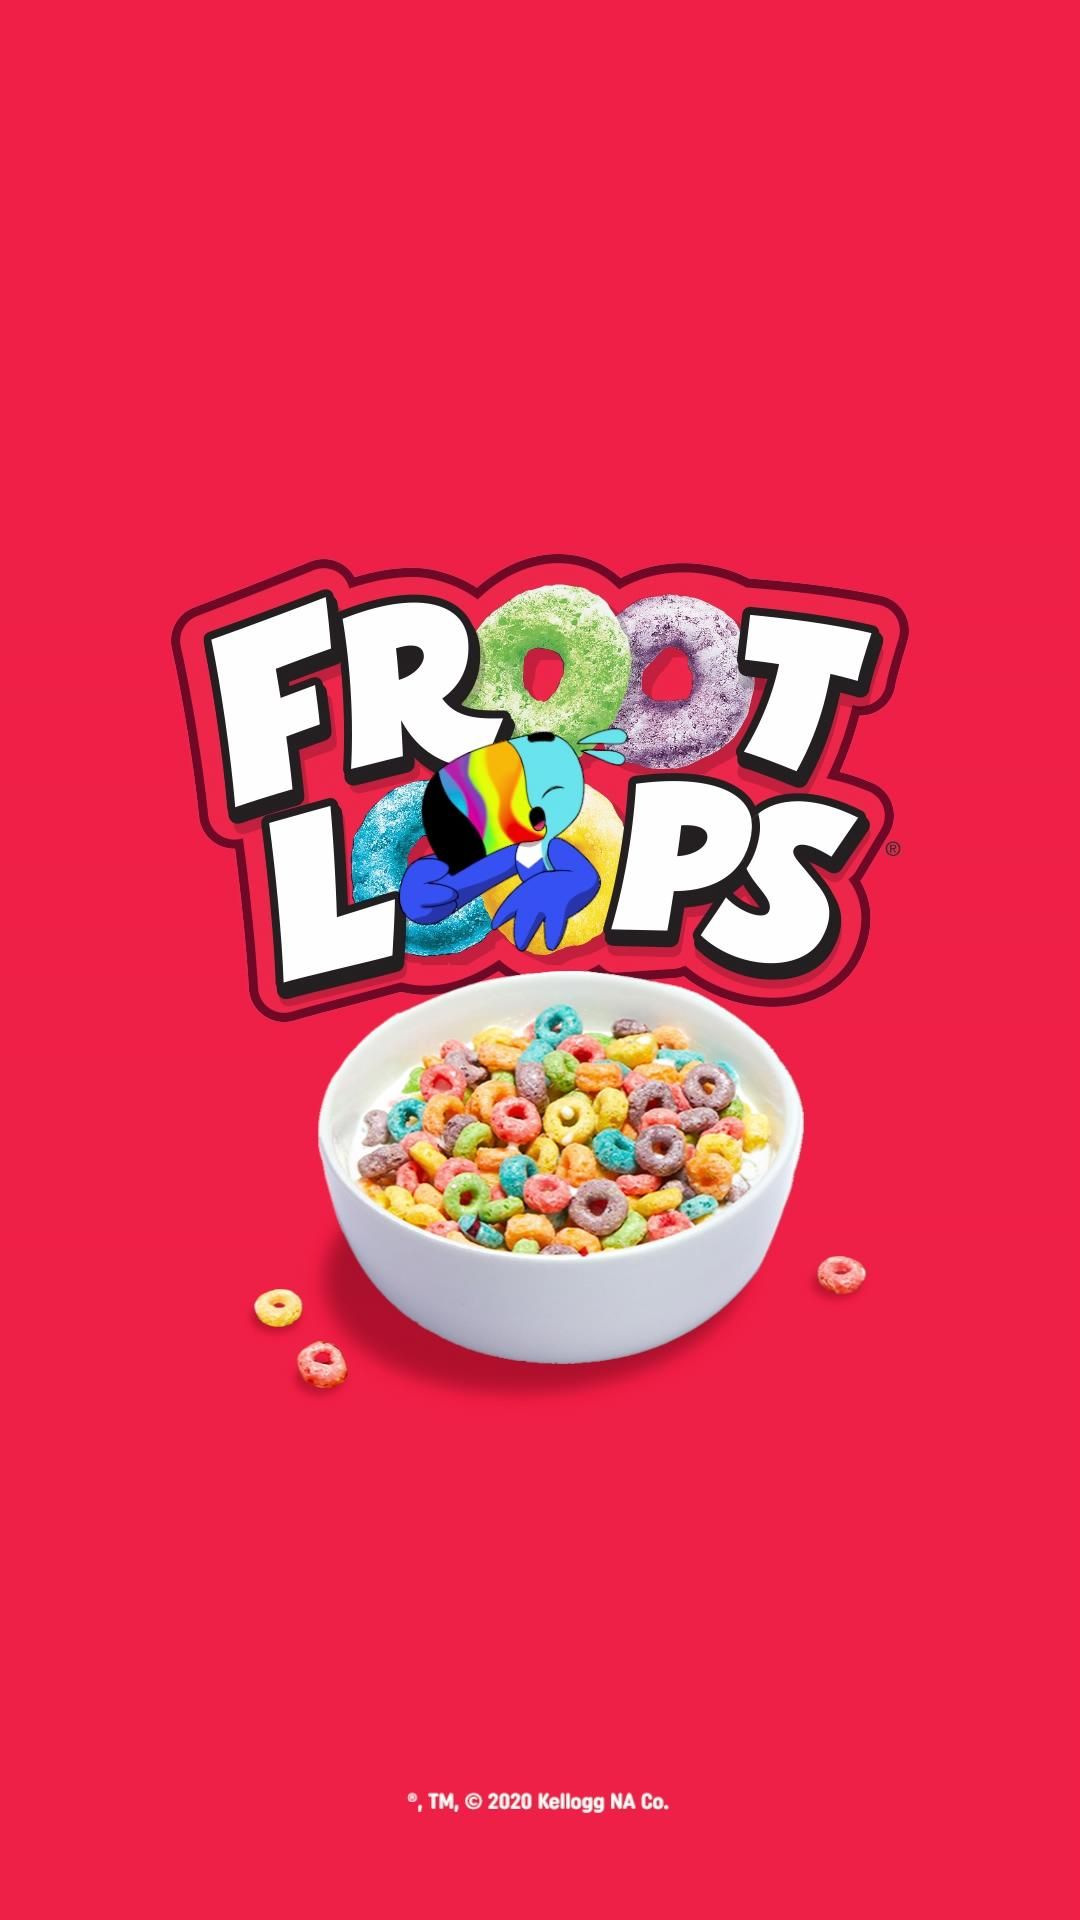 Toucan Sam is here with new adventures in the Froot Loops World